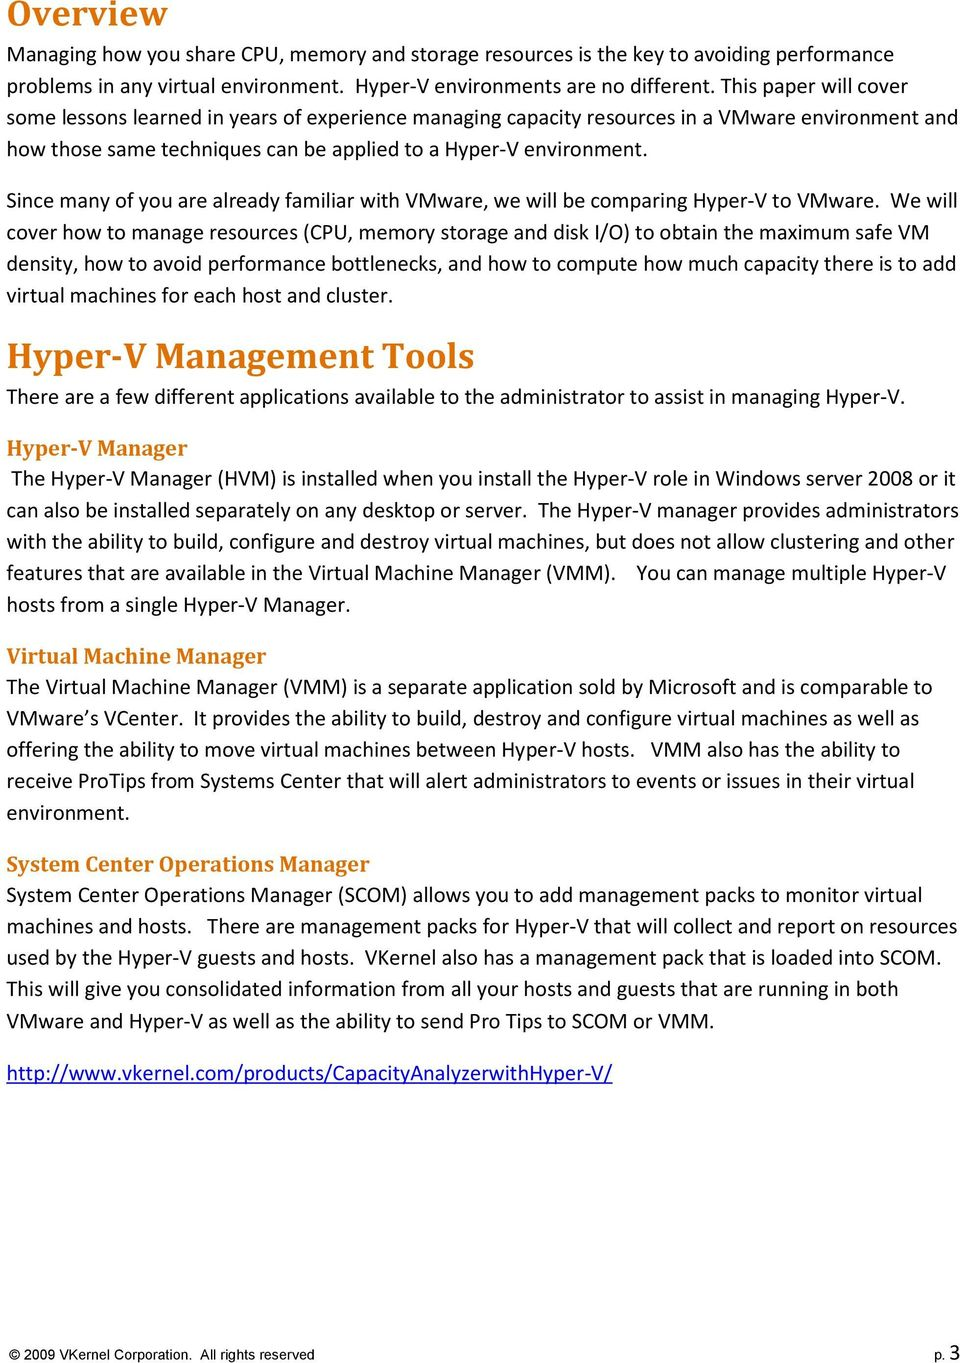 Since many of you are already familiar with VMware, we will be comparing Hyper-V to VMware.